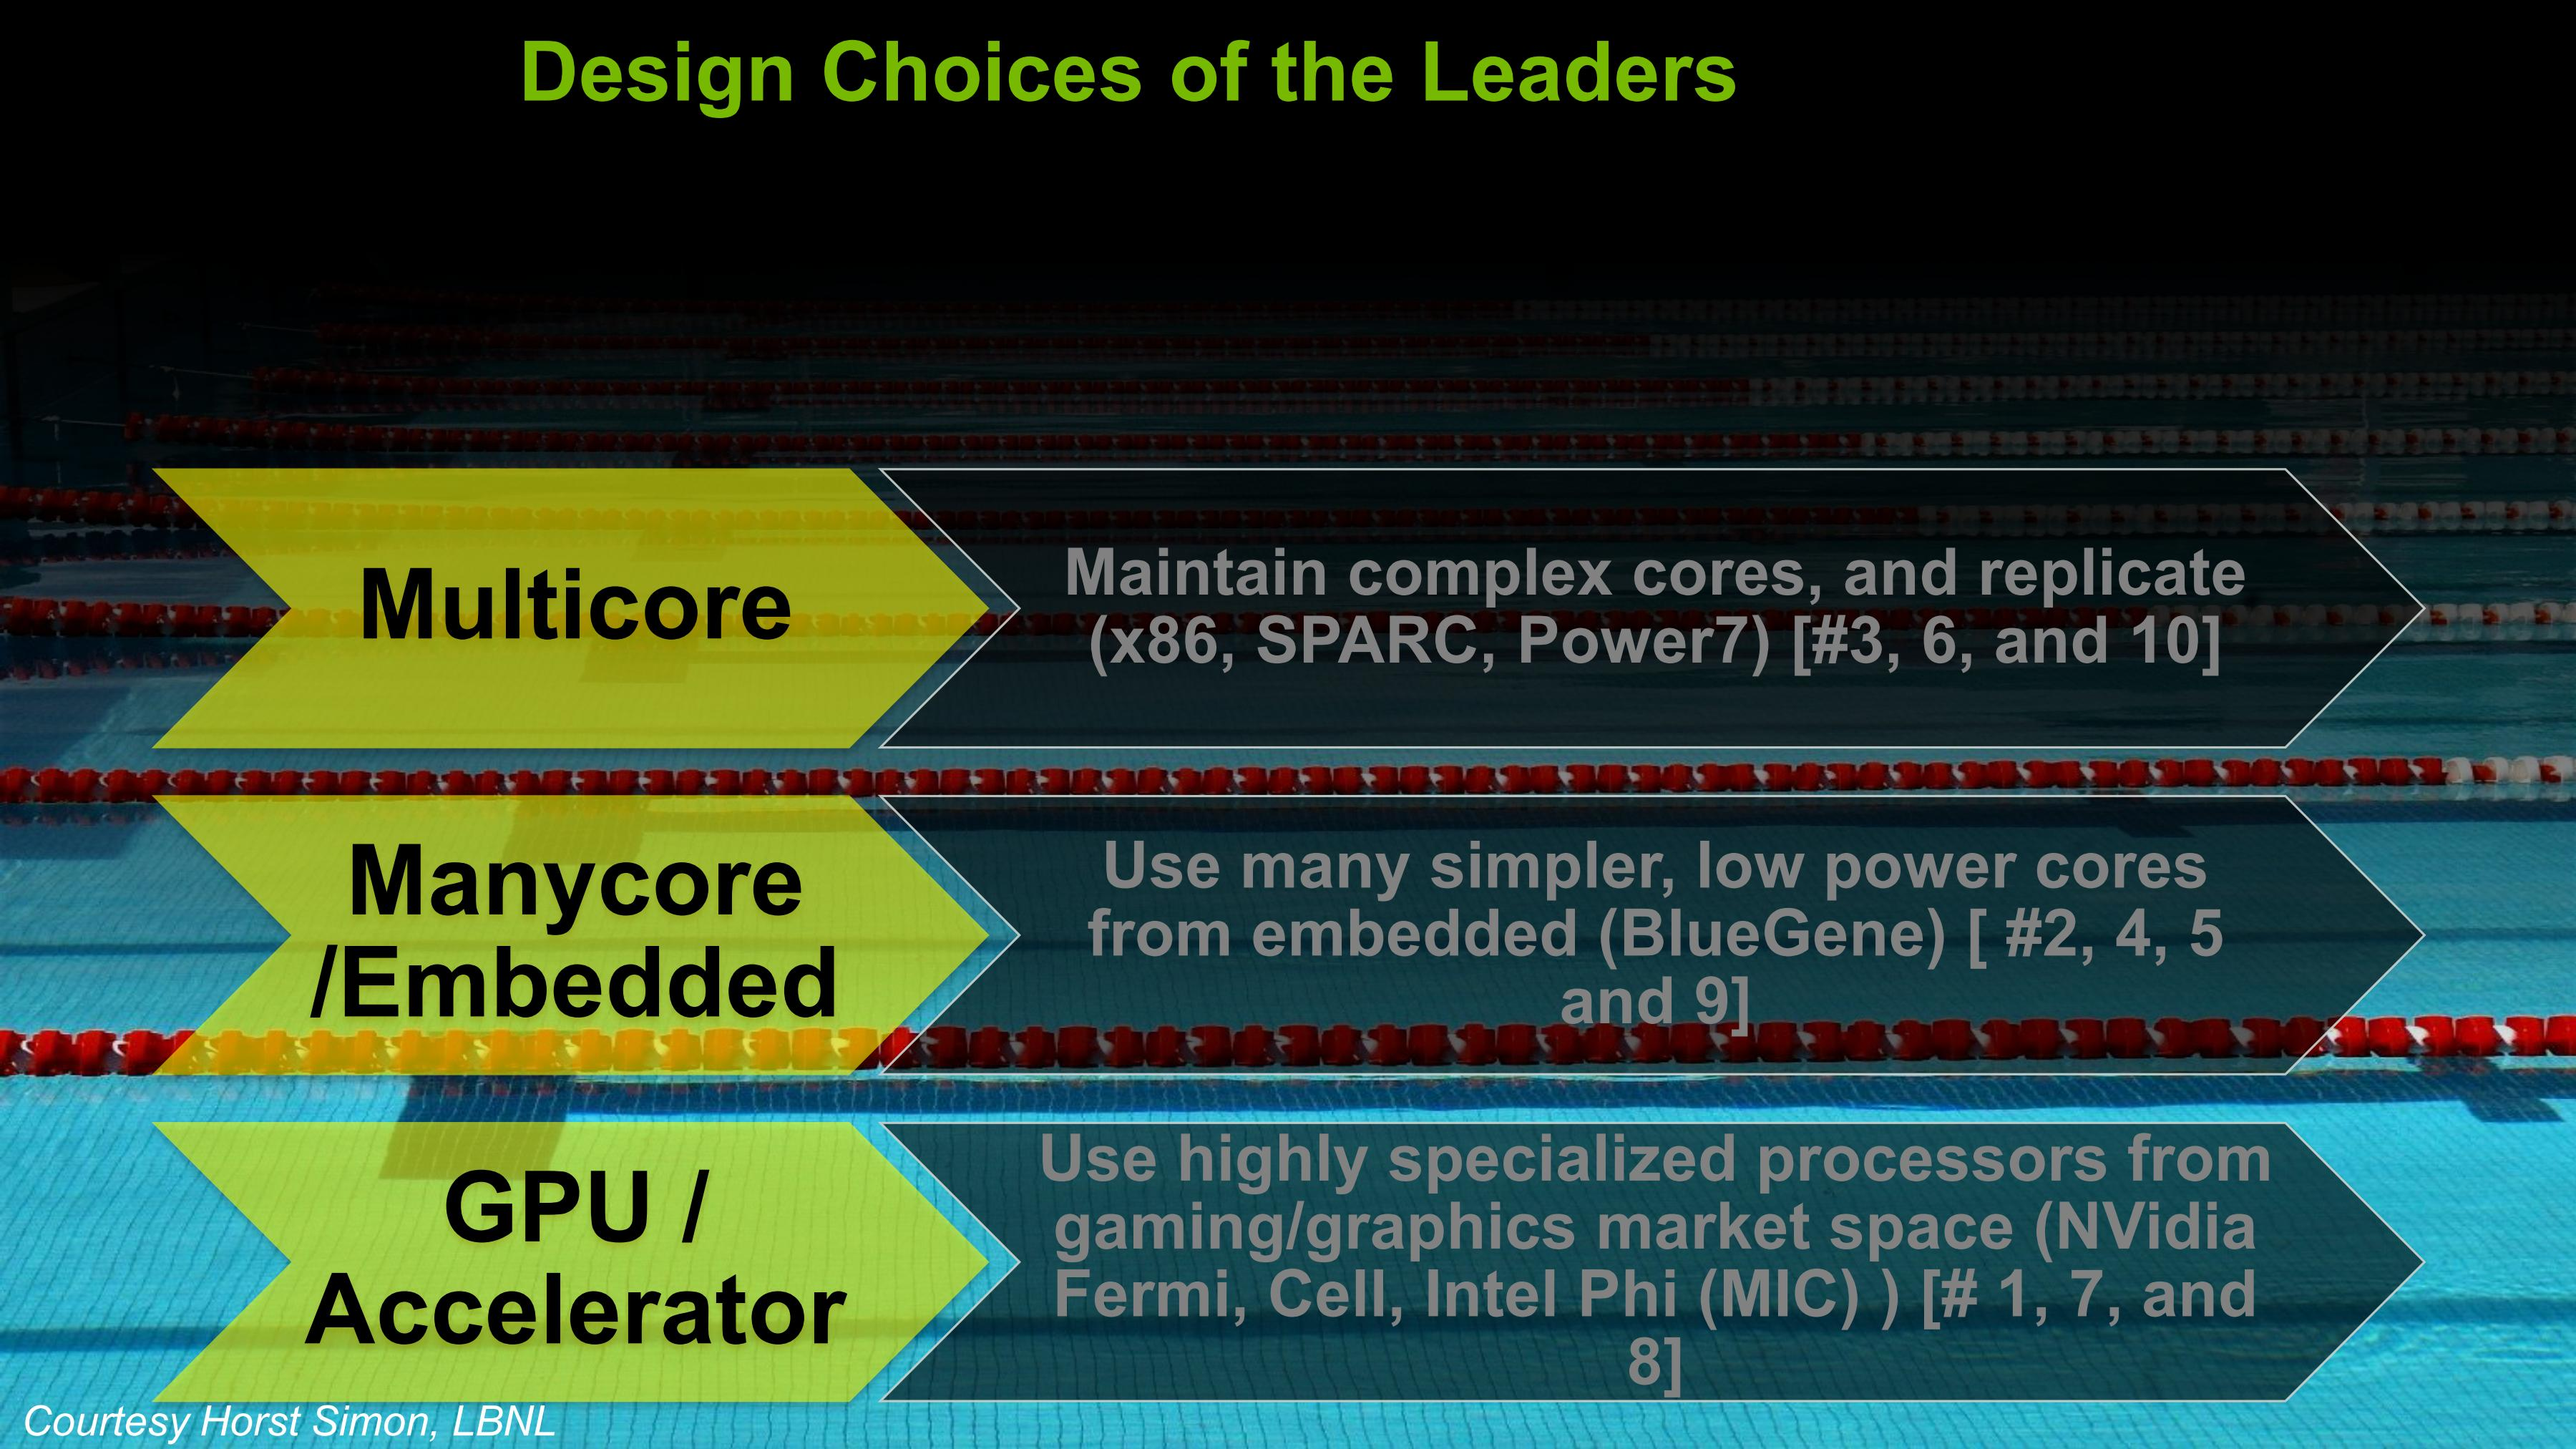 Design Choices of the Leaders